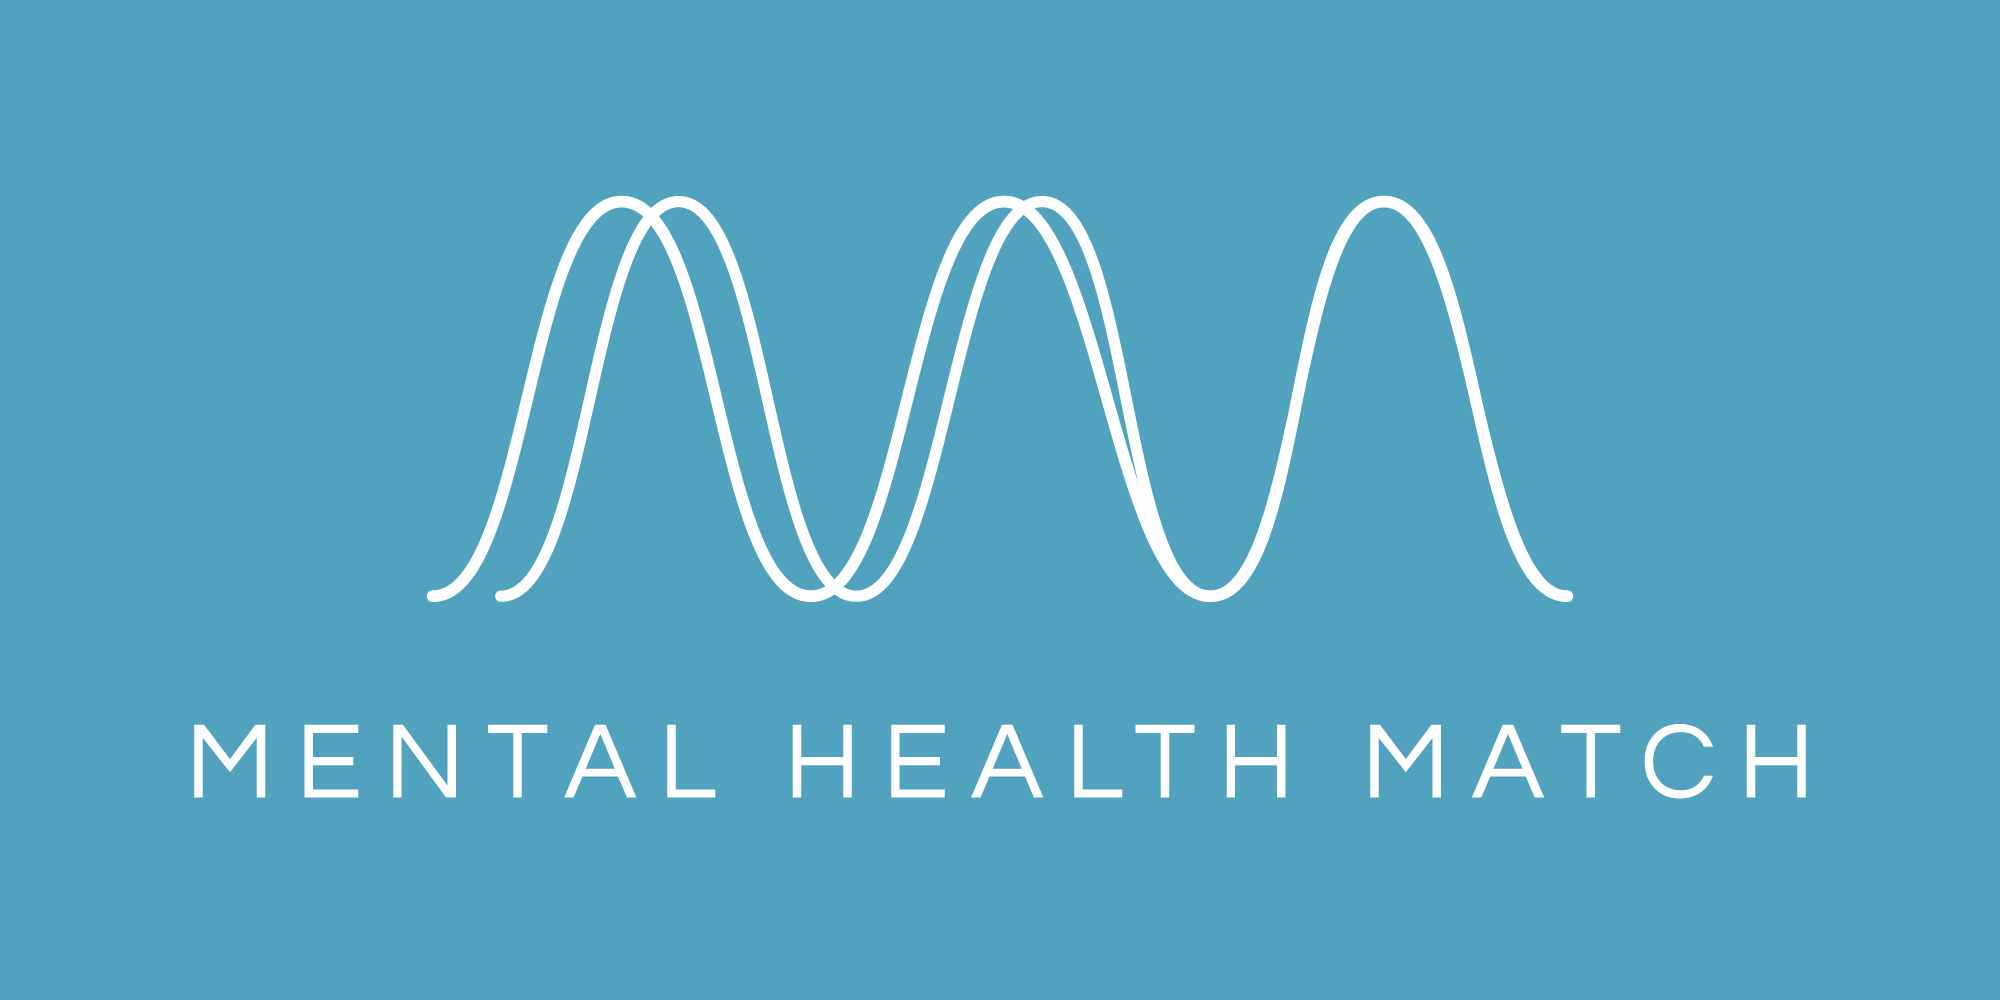 Mental Health Match helps people find the right therapist, and finds a new home in Portland